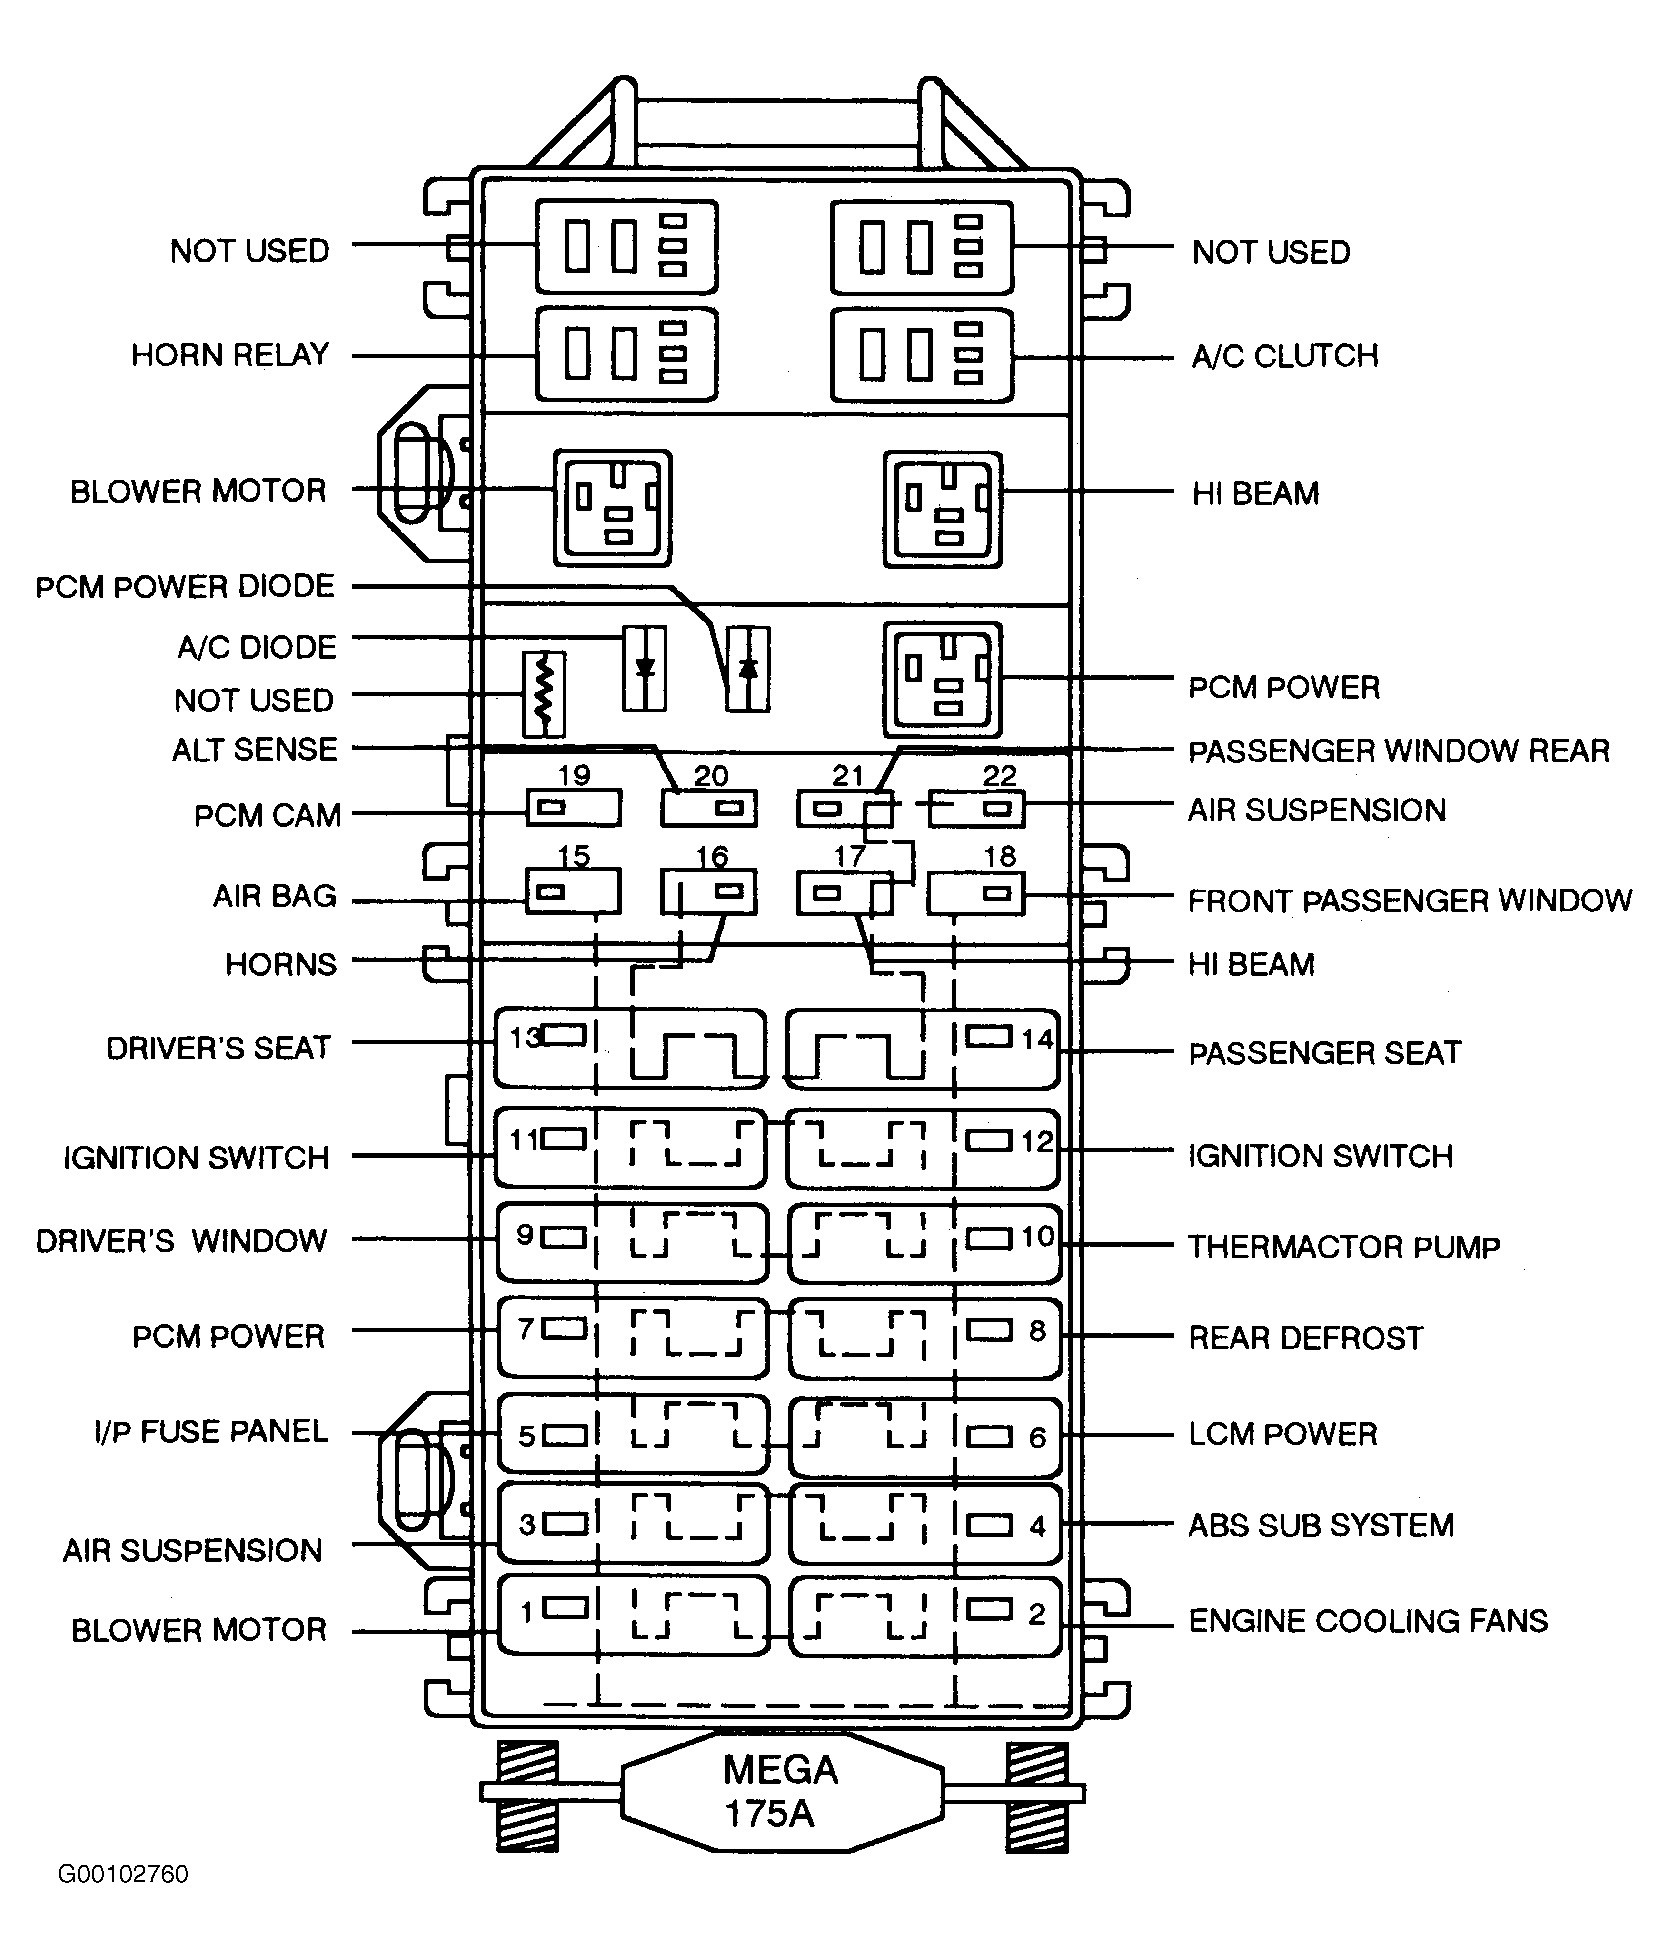 Car Fuse Box Circuit Diagrams Wiring Diagram Detailed 96 Evinrude Blogs Light Automotive Trusted